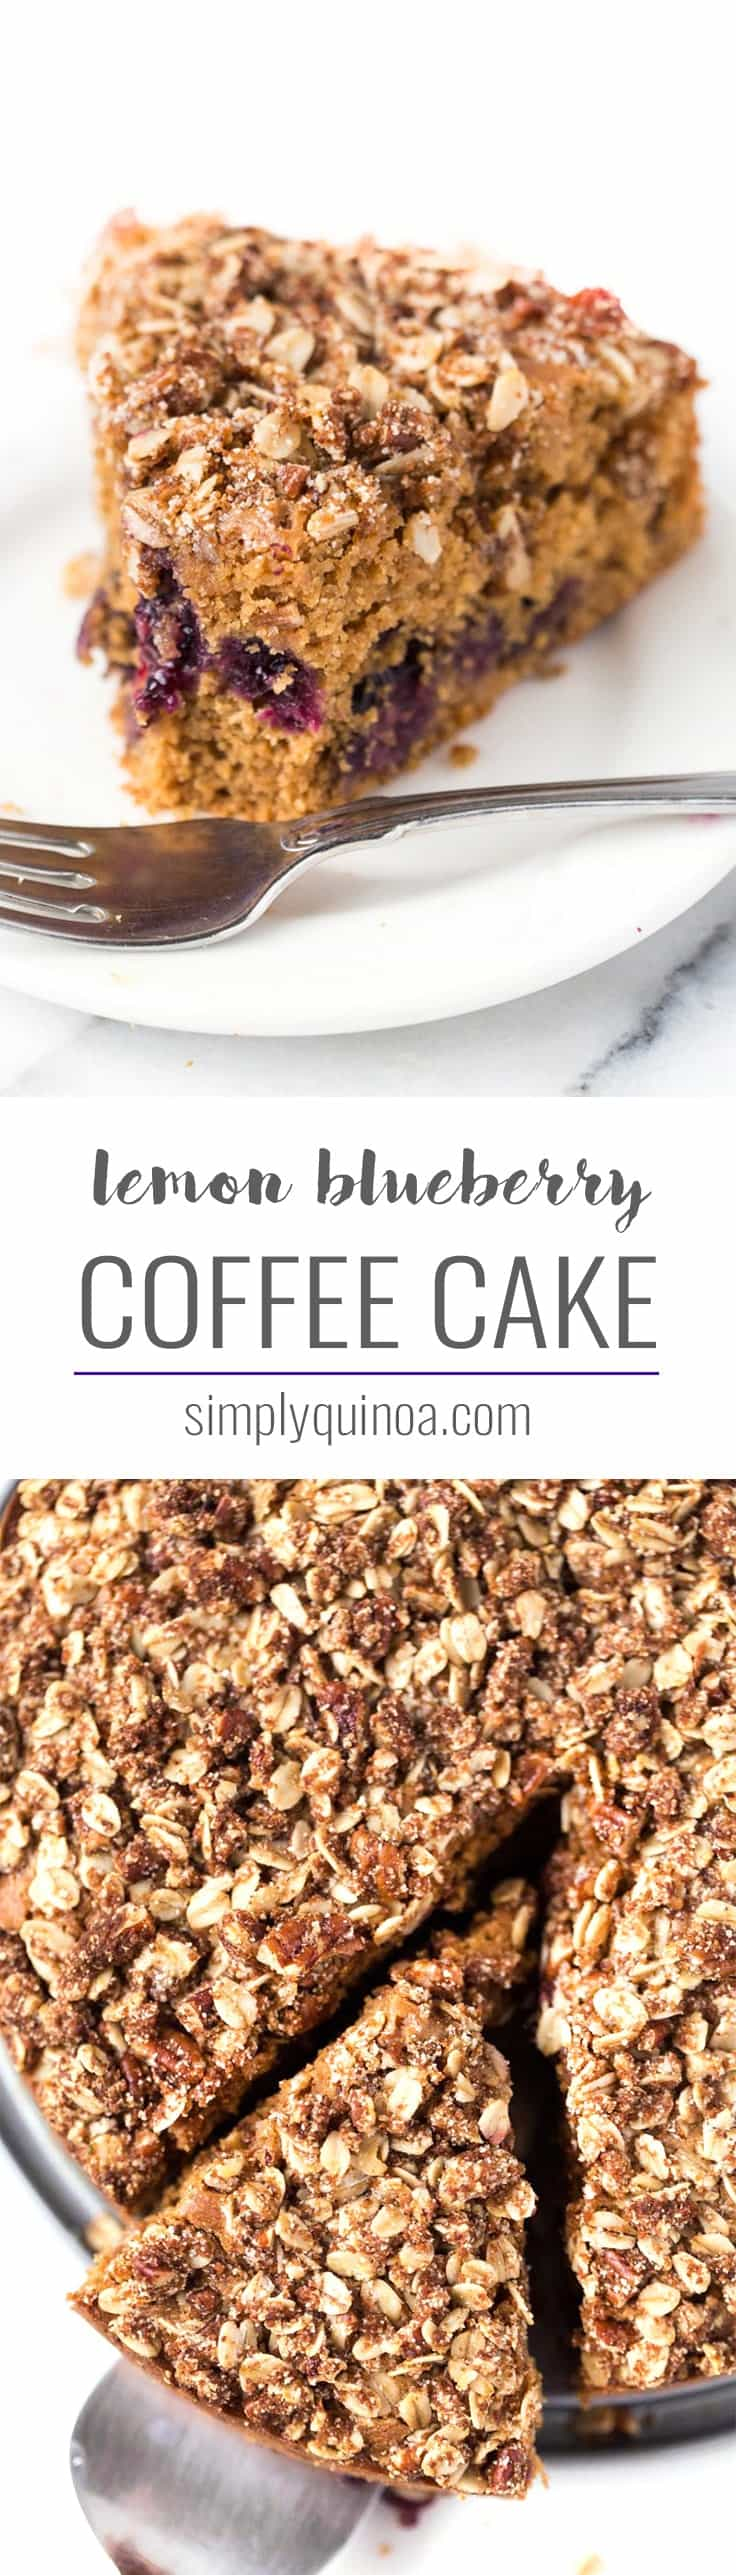 Try this Gluten-Free Lemon Blueberry Coffee Cake for breakfast! It's HEALTHY, easy to make and tastes AMAZING!